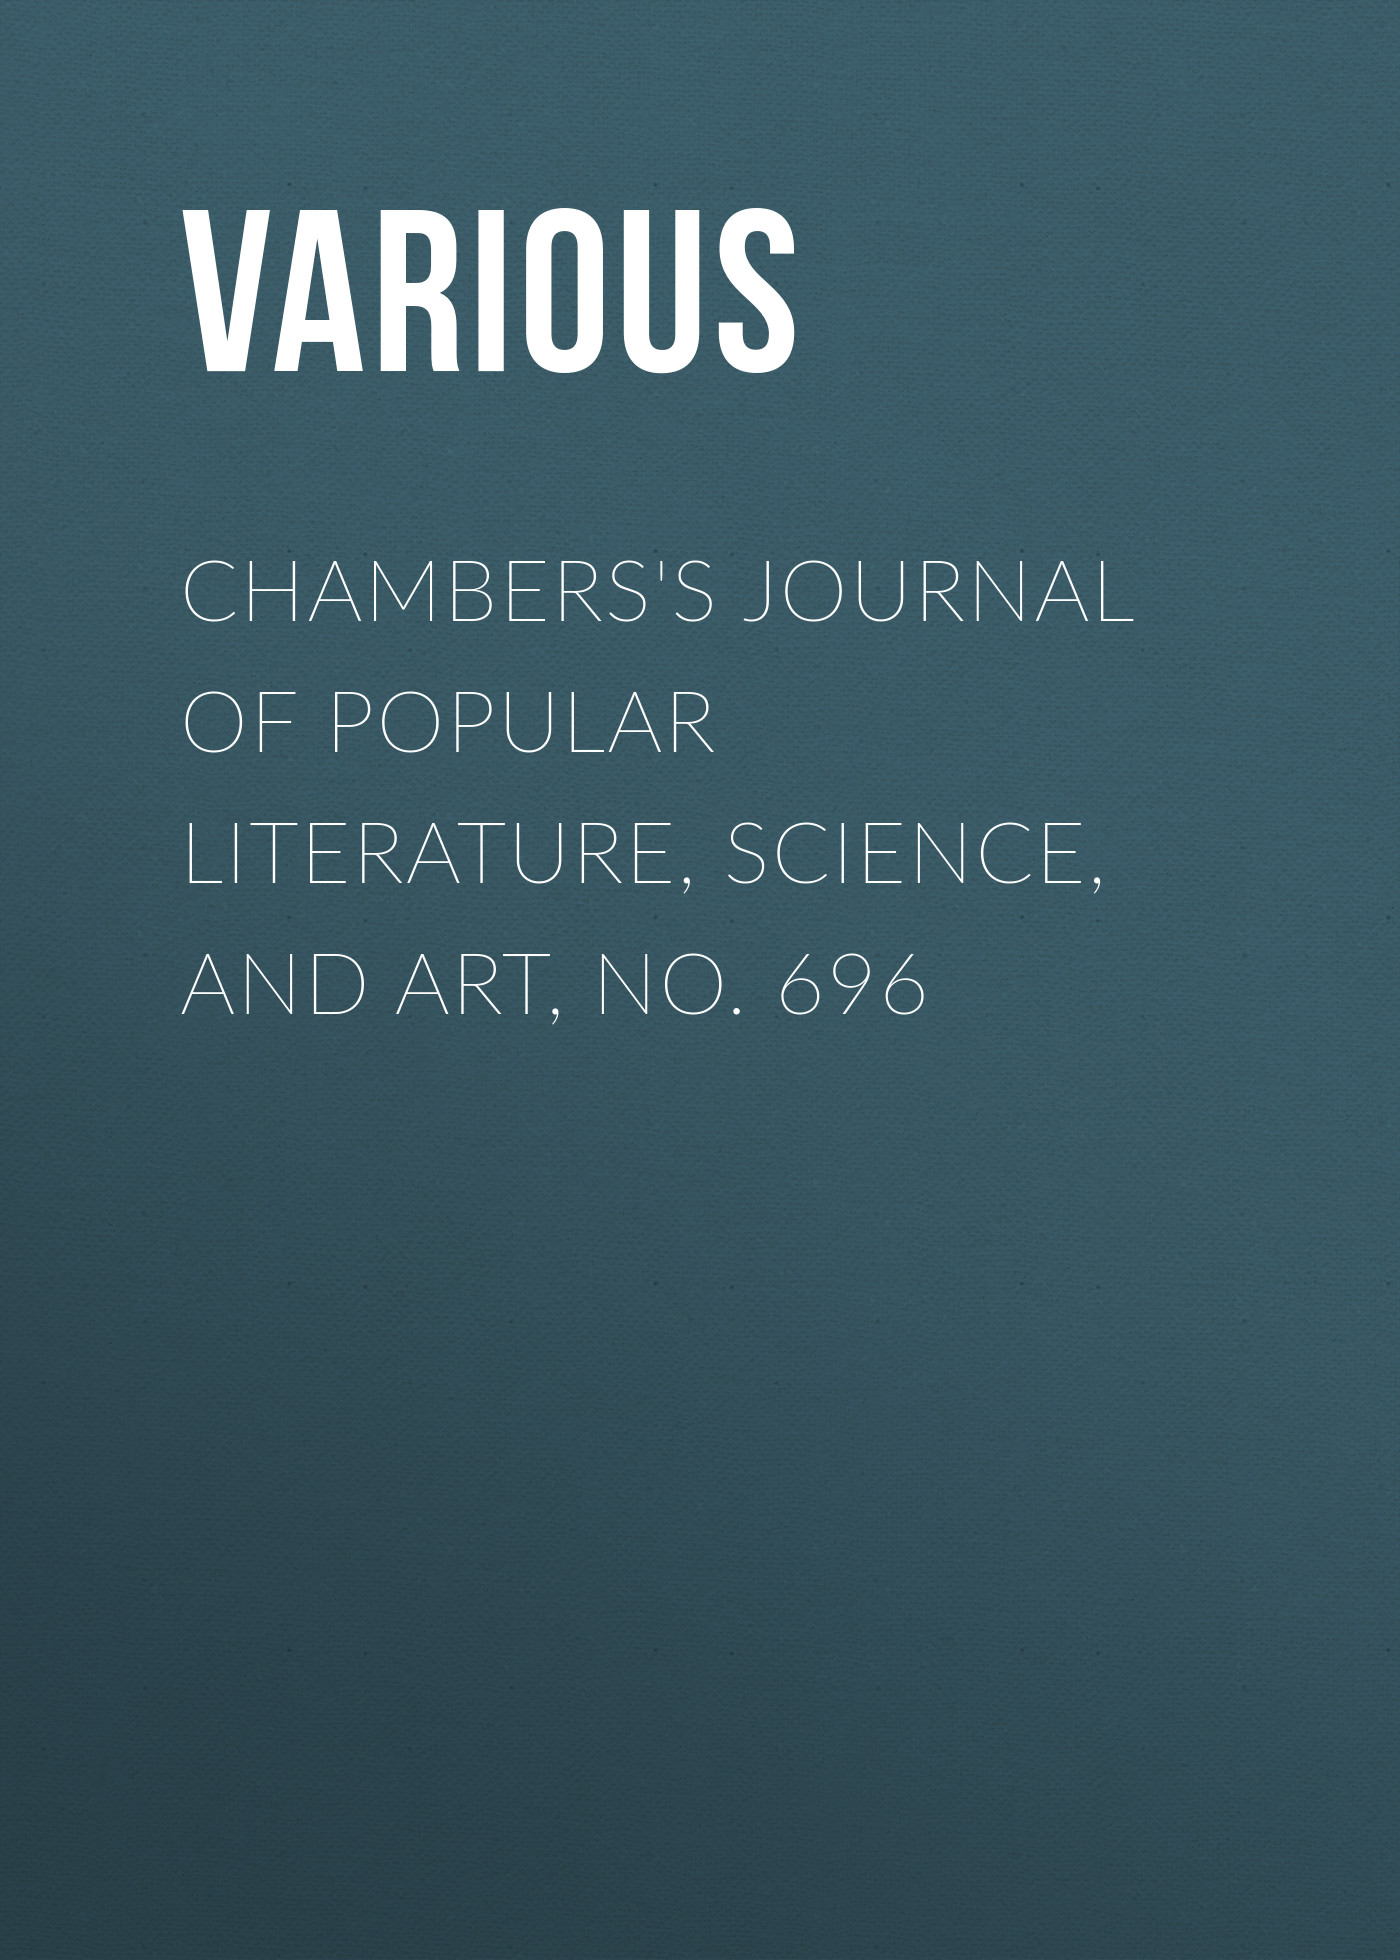 Various Chambers's Journal of Popular Literature, Science, and Art, No. 696